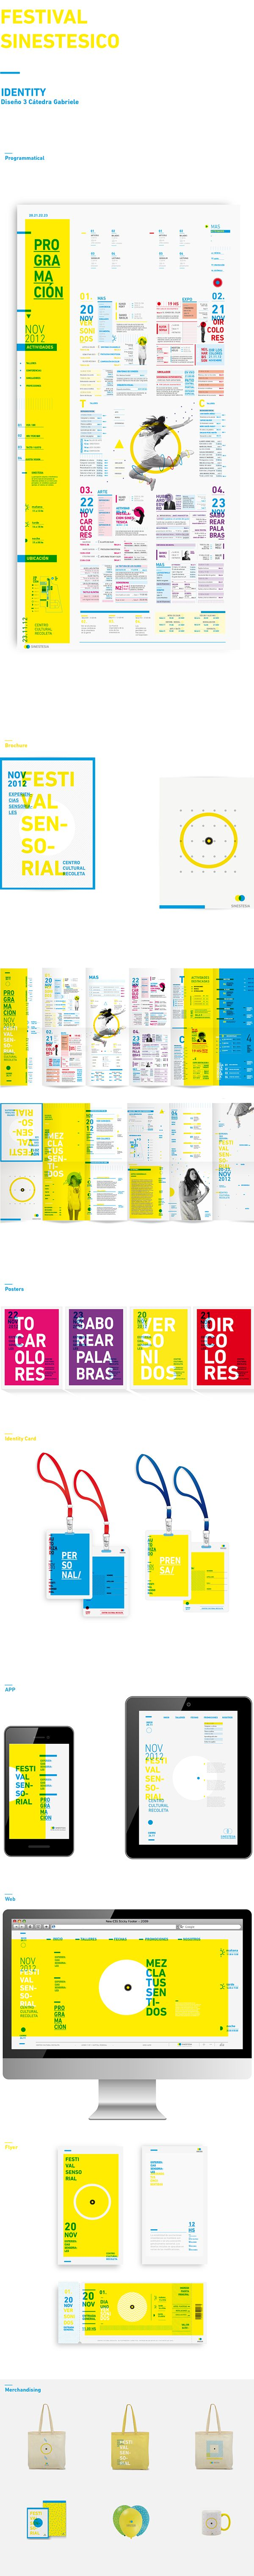 Sinestesia Festival Identity on Behance